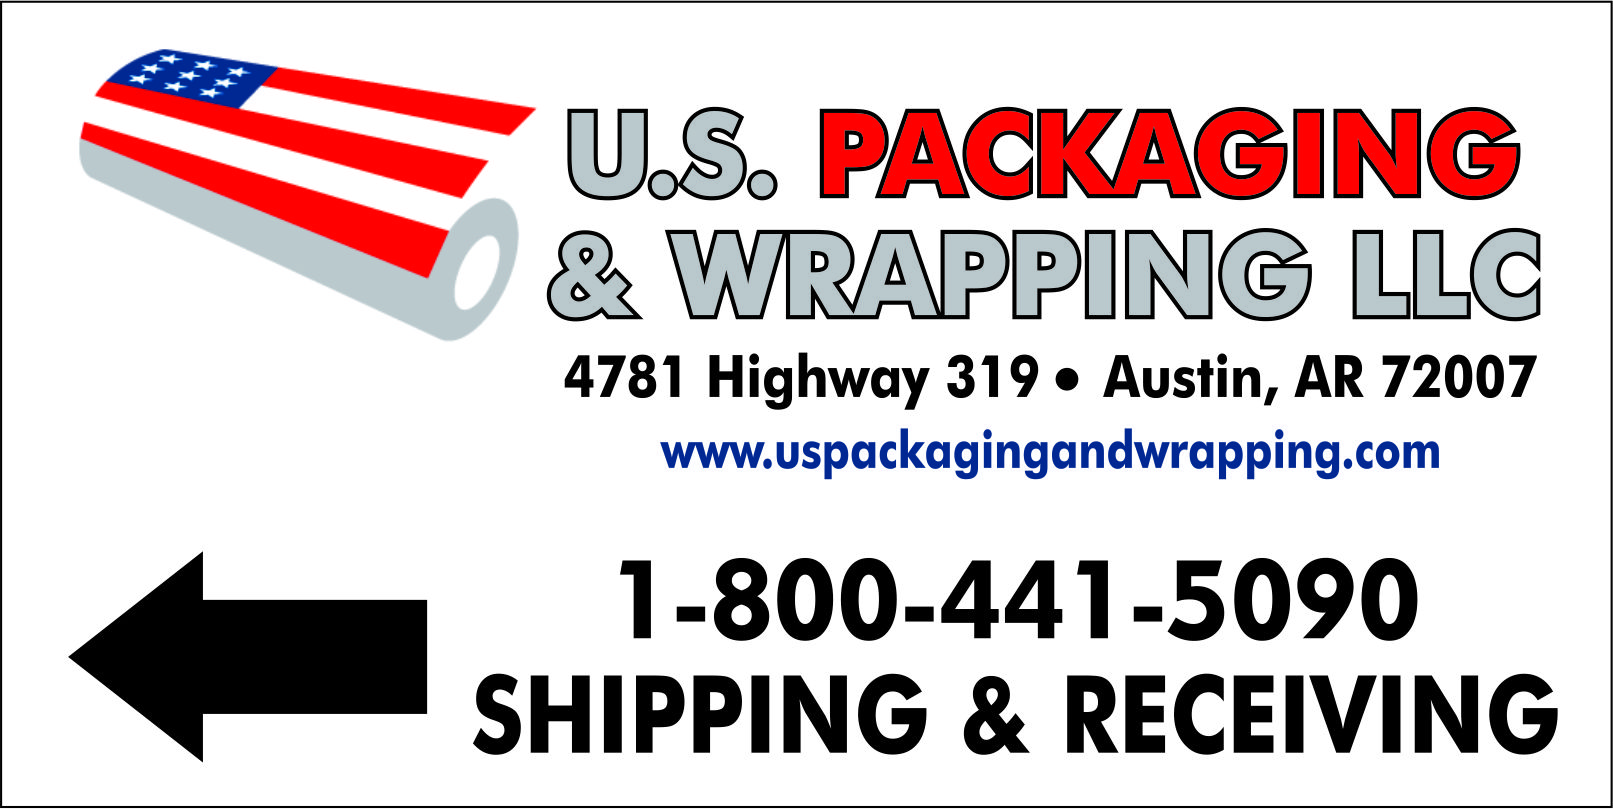 U.S. Packaging and Wrapping New Facility